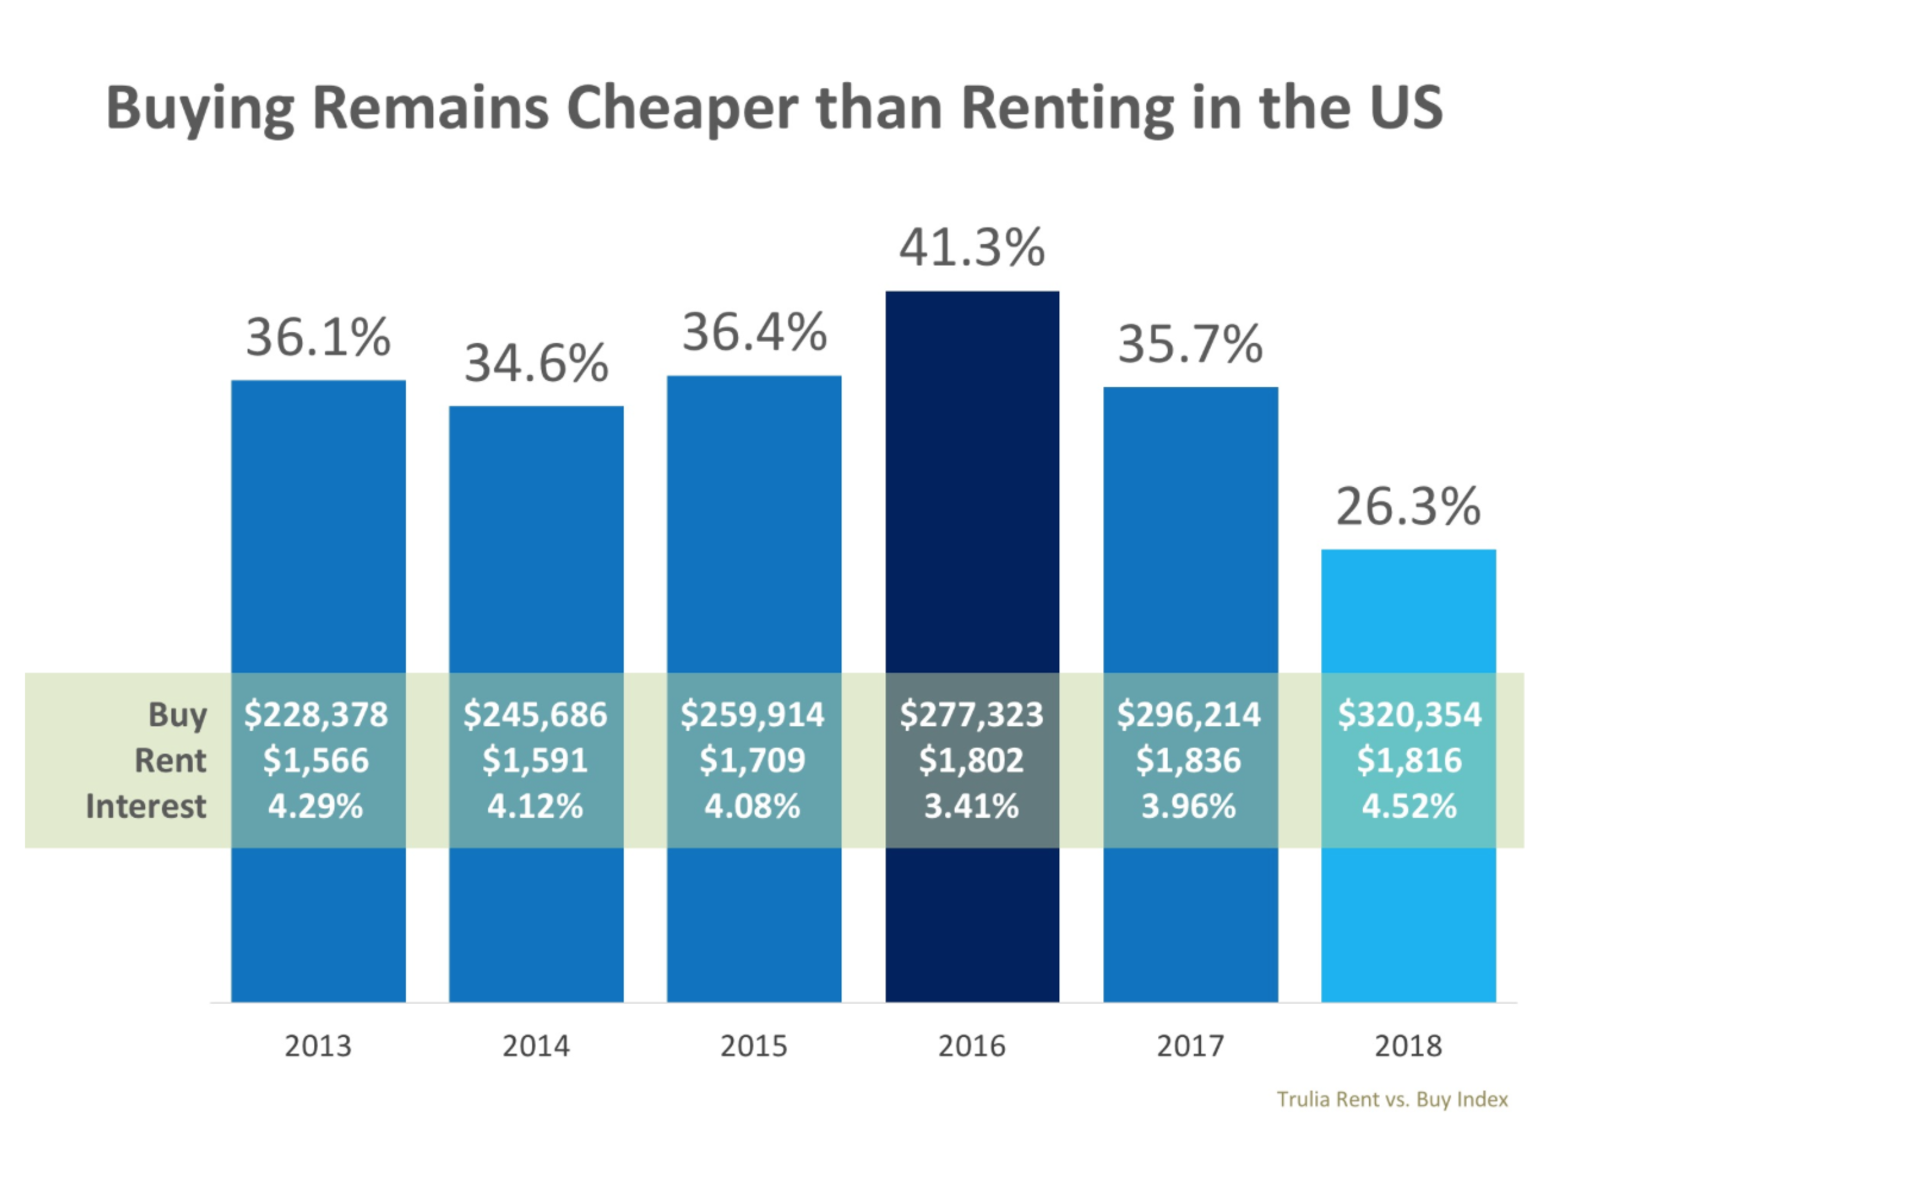 Buying 26.3% Cheaper than Renting in the US